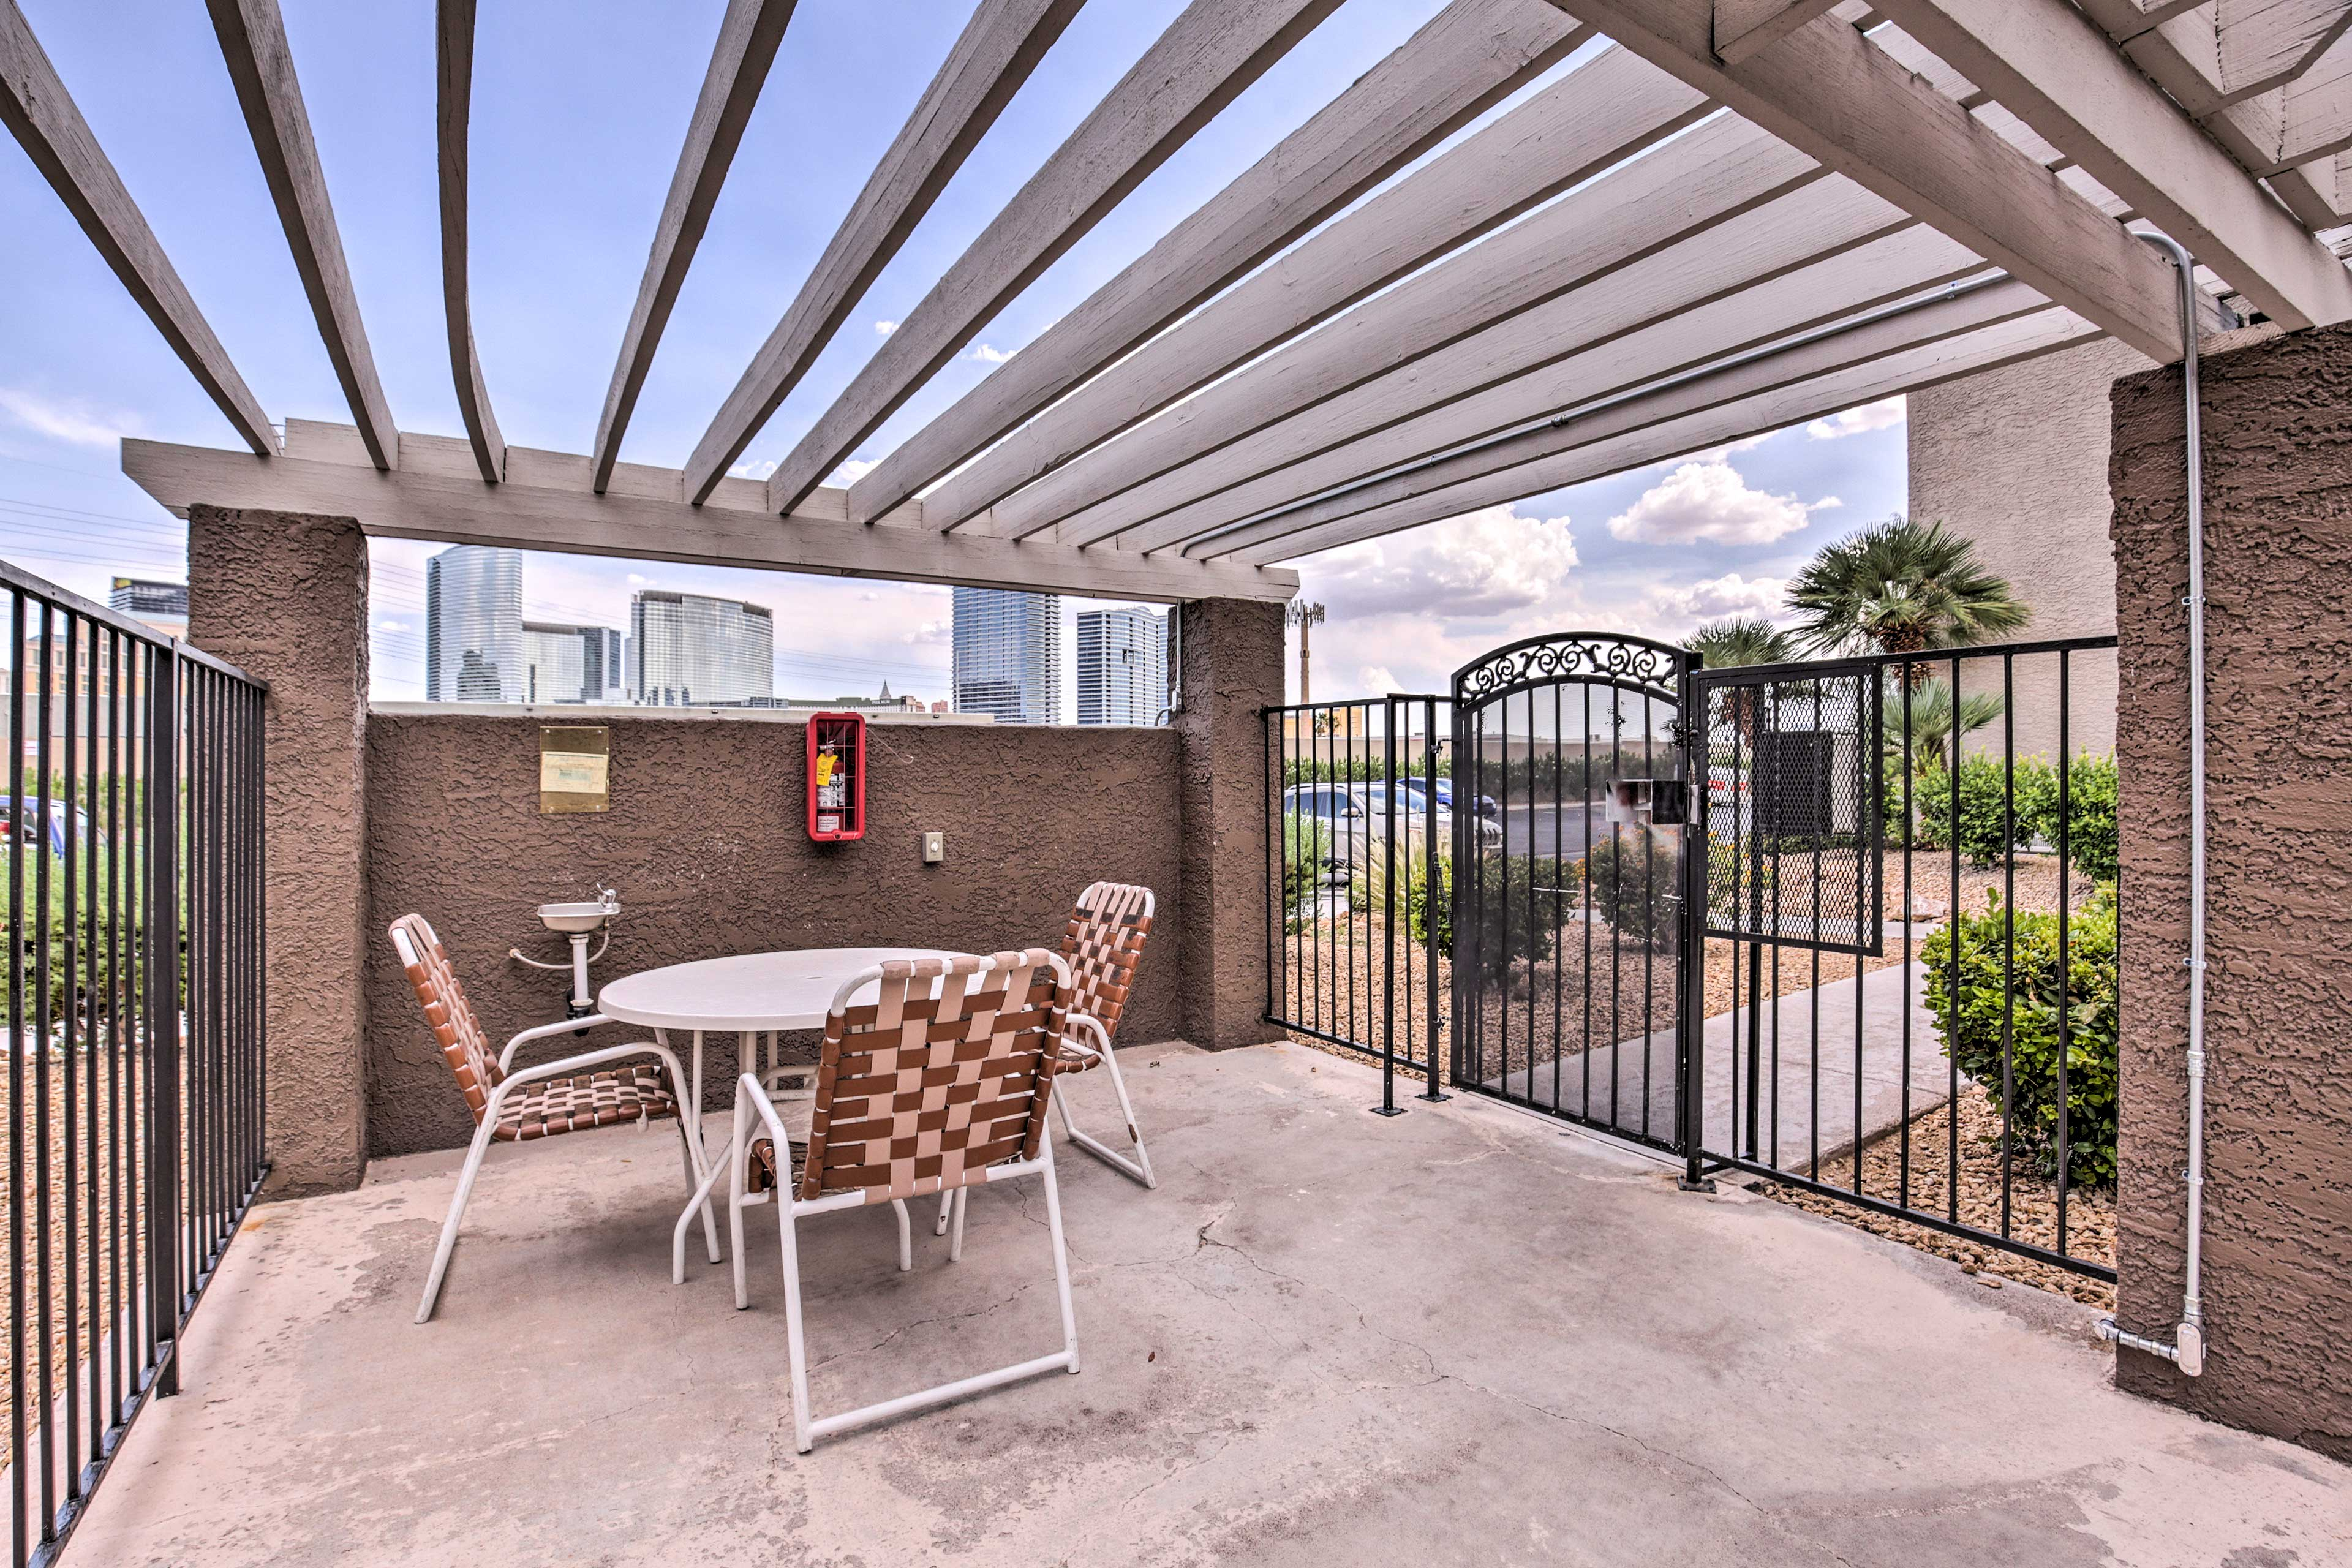 Enjoy an al fresco dining experinece at this community table.